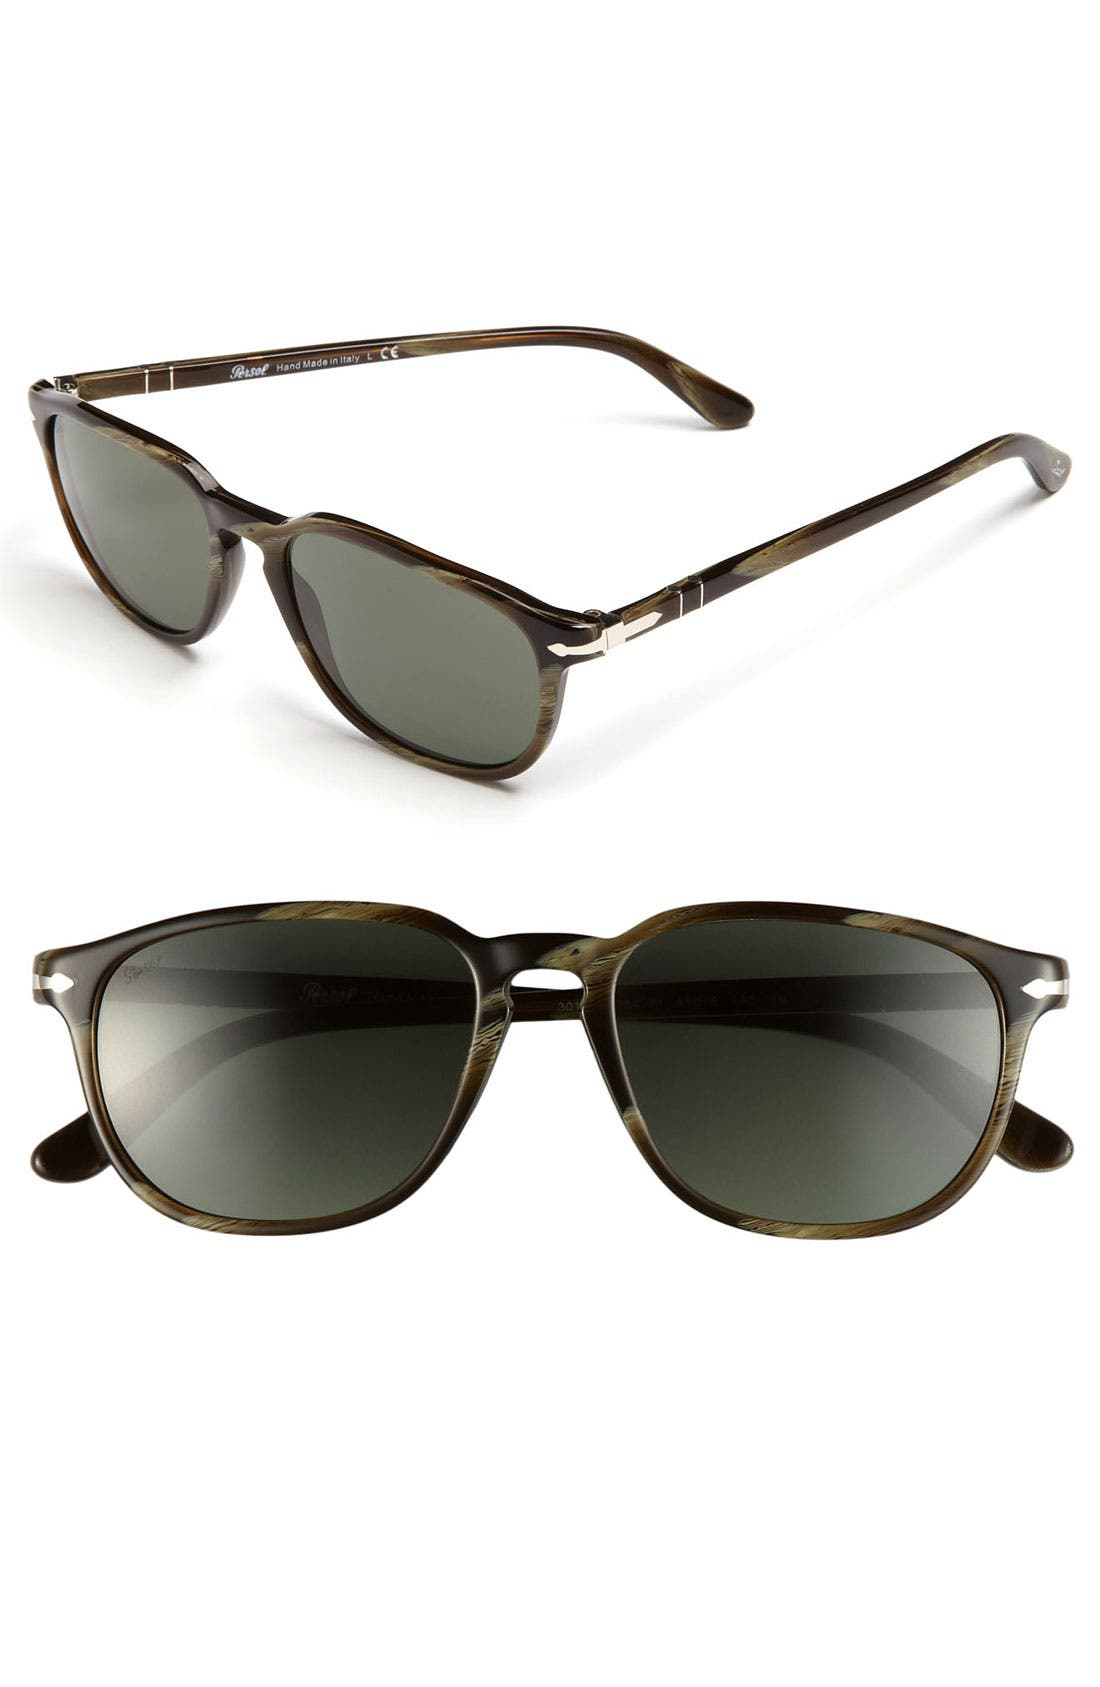 Main Image - Persol 52mm Retro Inspired Sunglasses